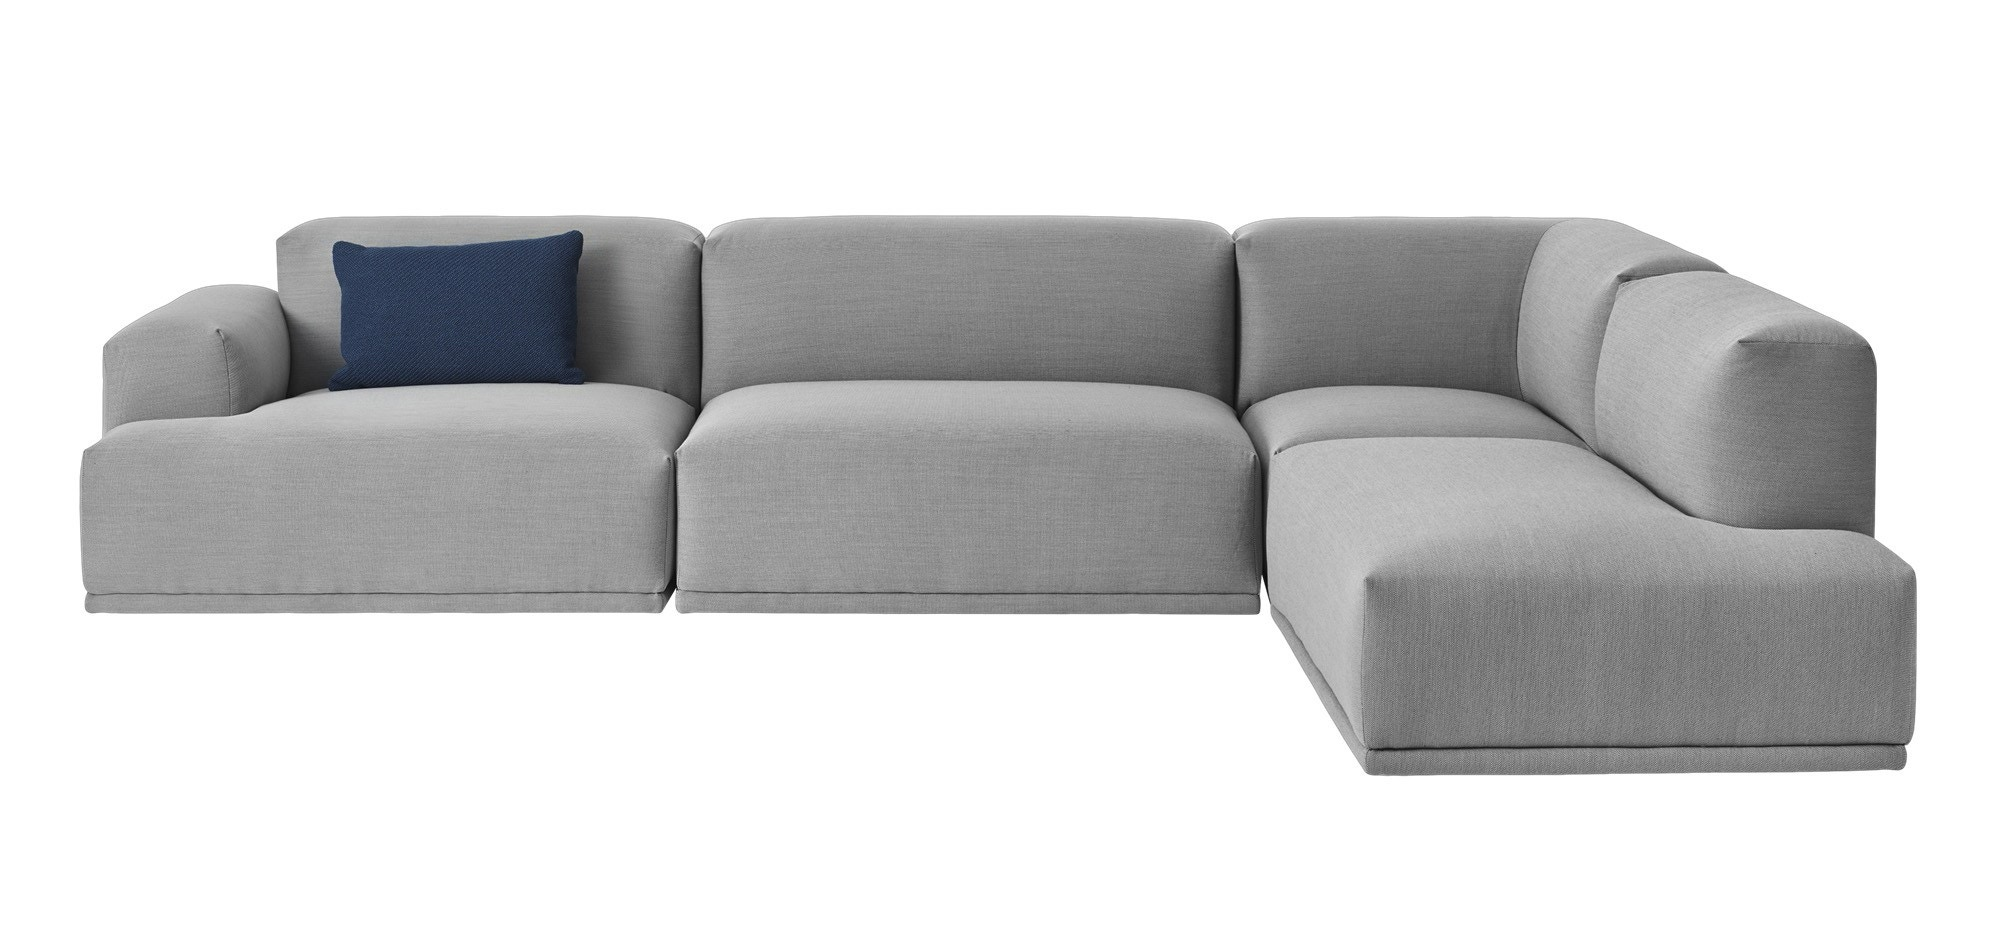 Superior Muuto Connect Modular Sofa